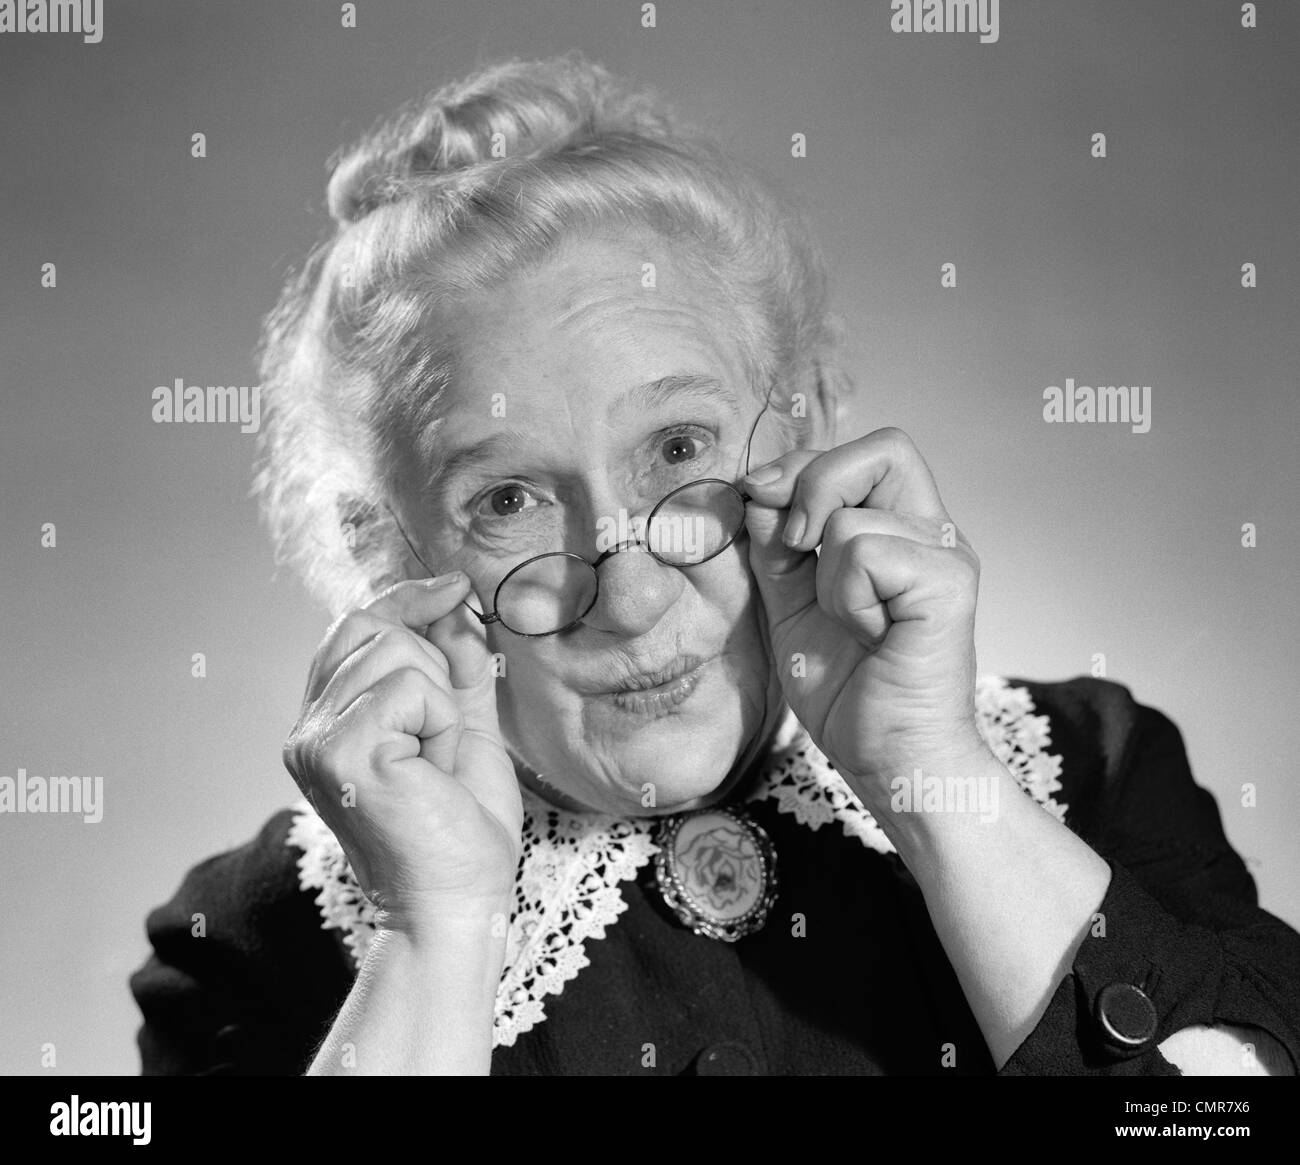 1950s PORTRAIT OF SMILING OLD LADY HOLDING HER ANTIQUE WIRE FRAME ...